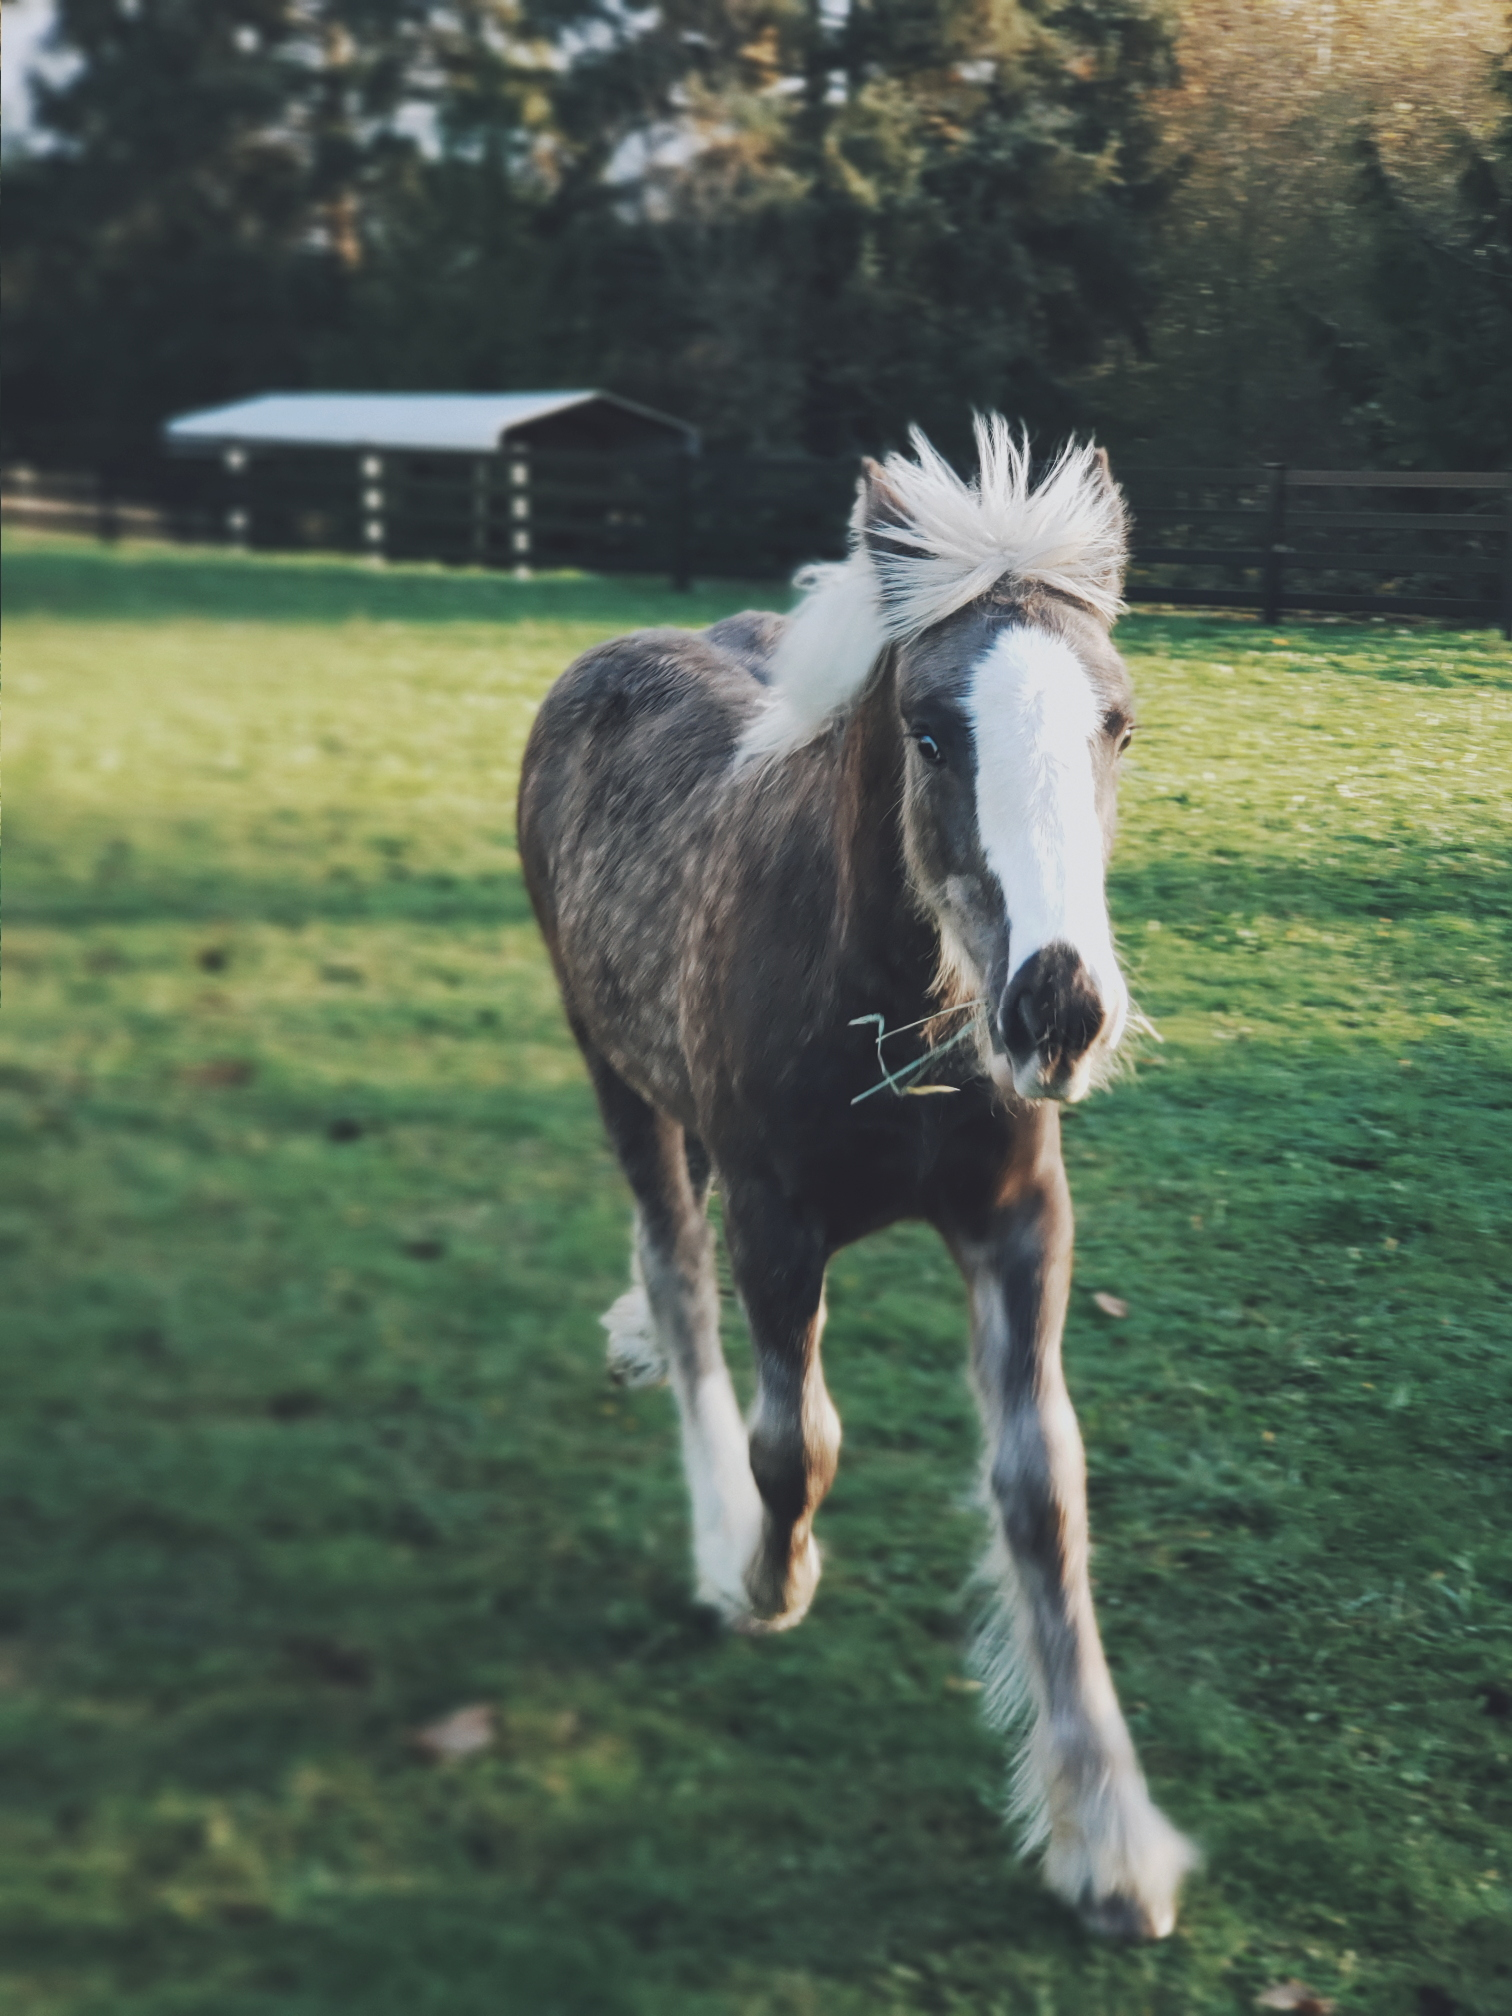 Liberty, our Gypsy Vanner filly